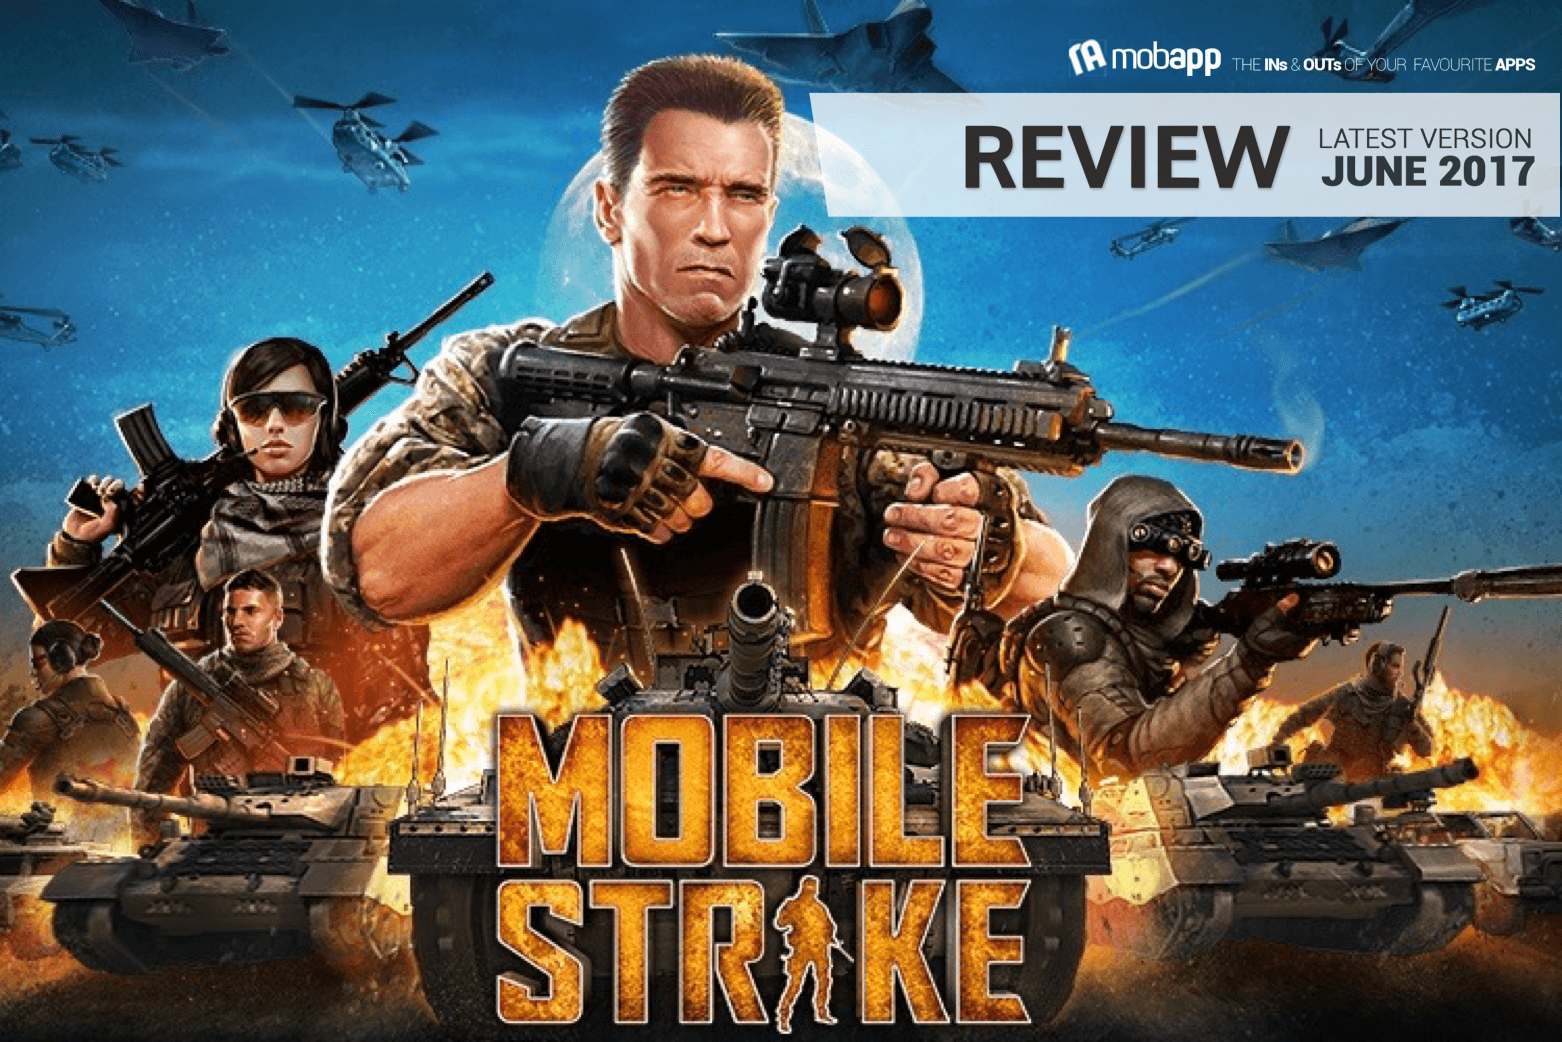 mobapp,apps,reviews,mobile strike,review,action,Arnold Schwarzenegger,famous,game,gameplay,building,upgrading,military base,real-time,android,iOS,rating,action hero,feedback,players,TV commercials,strategy formula,tap and wait,planning,post-battle reward,visual effects,player chats,video,